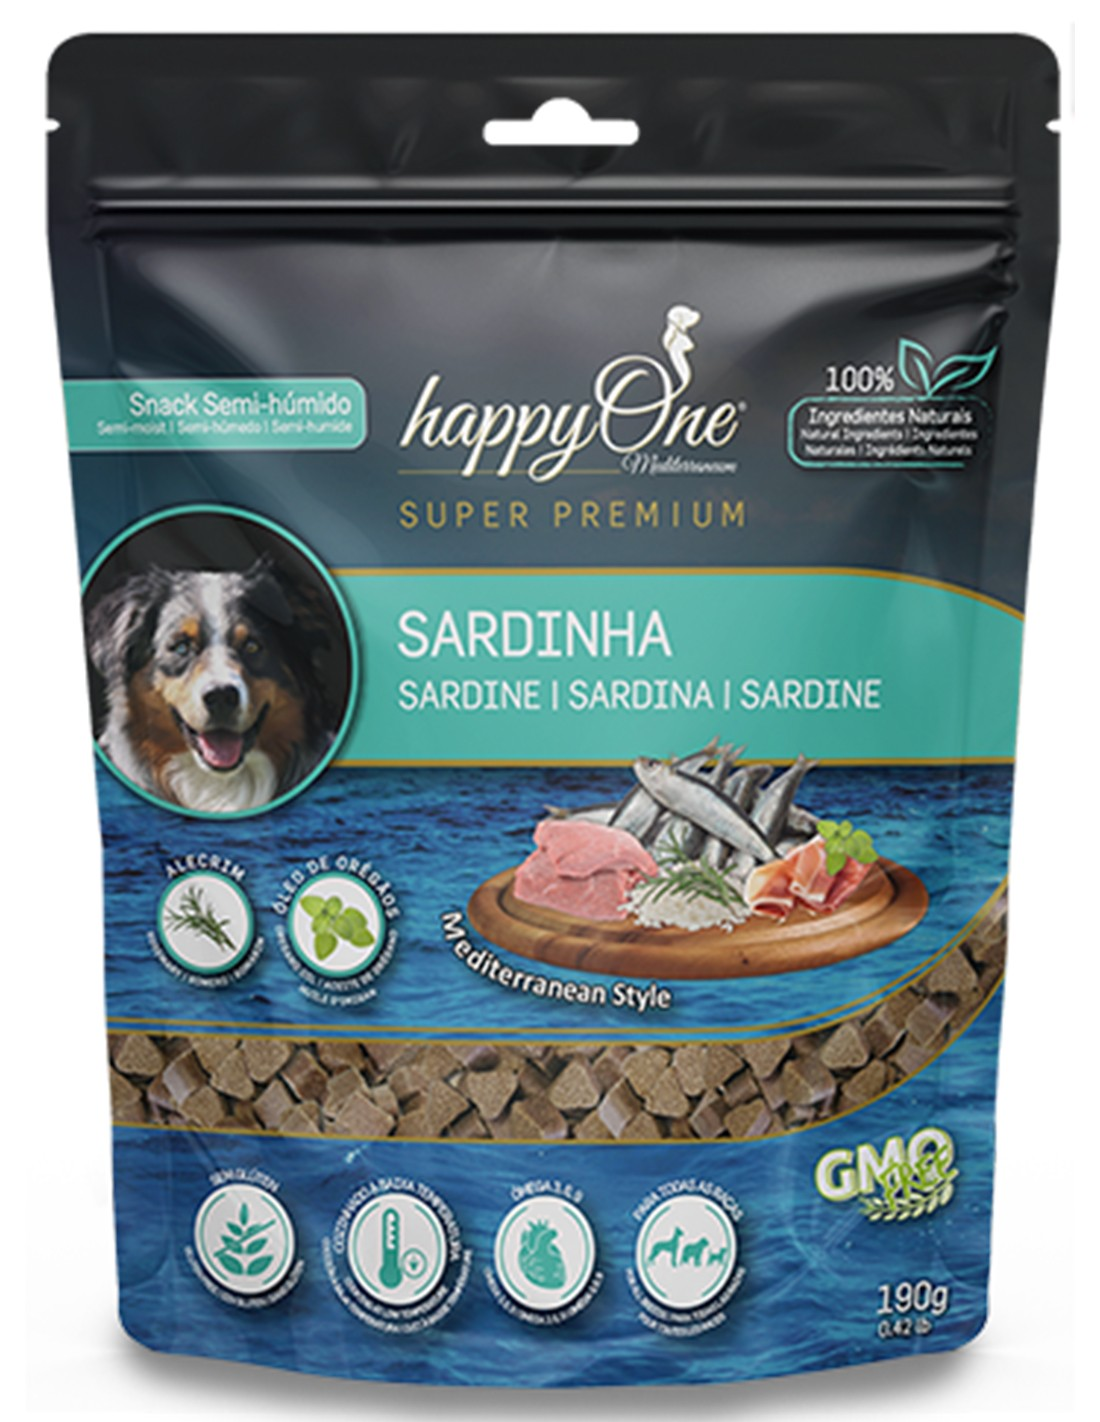 HAPPY ONE Sardina Snack Semi-húmedo para perros